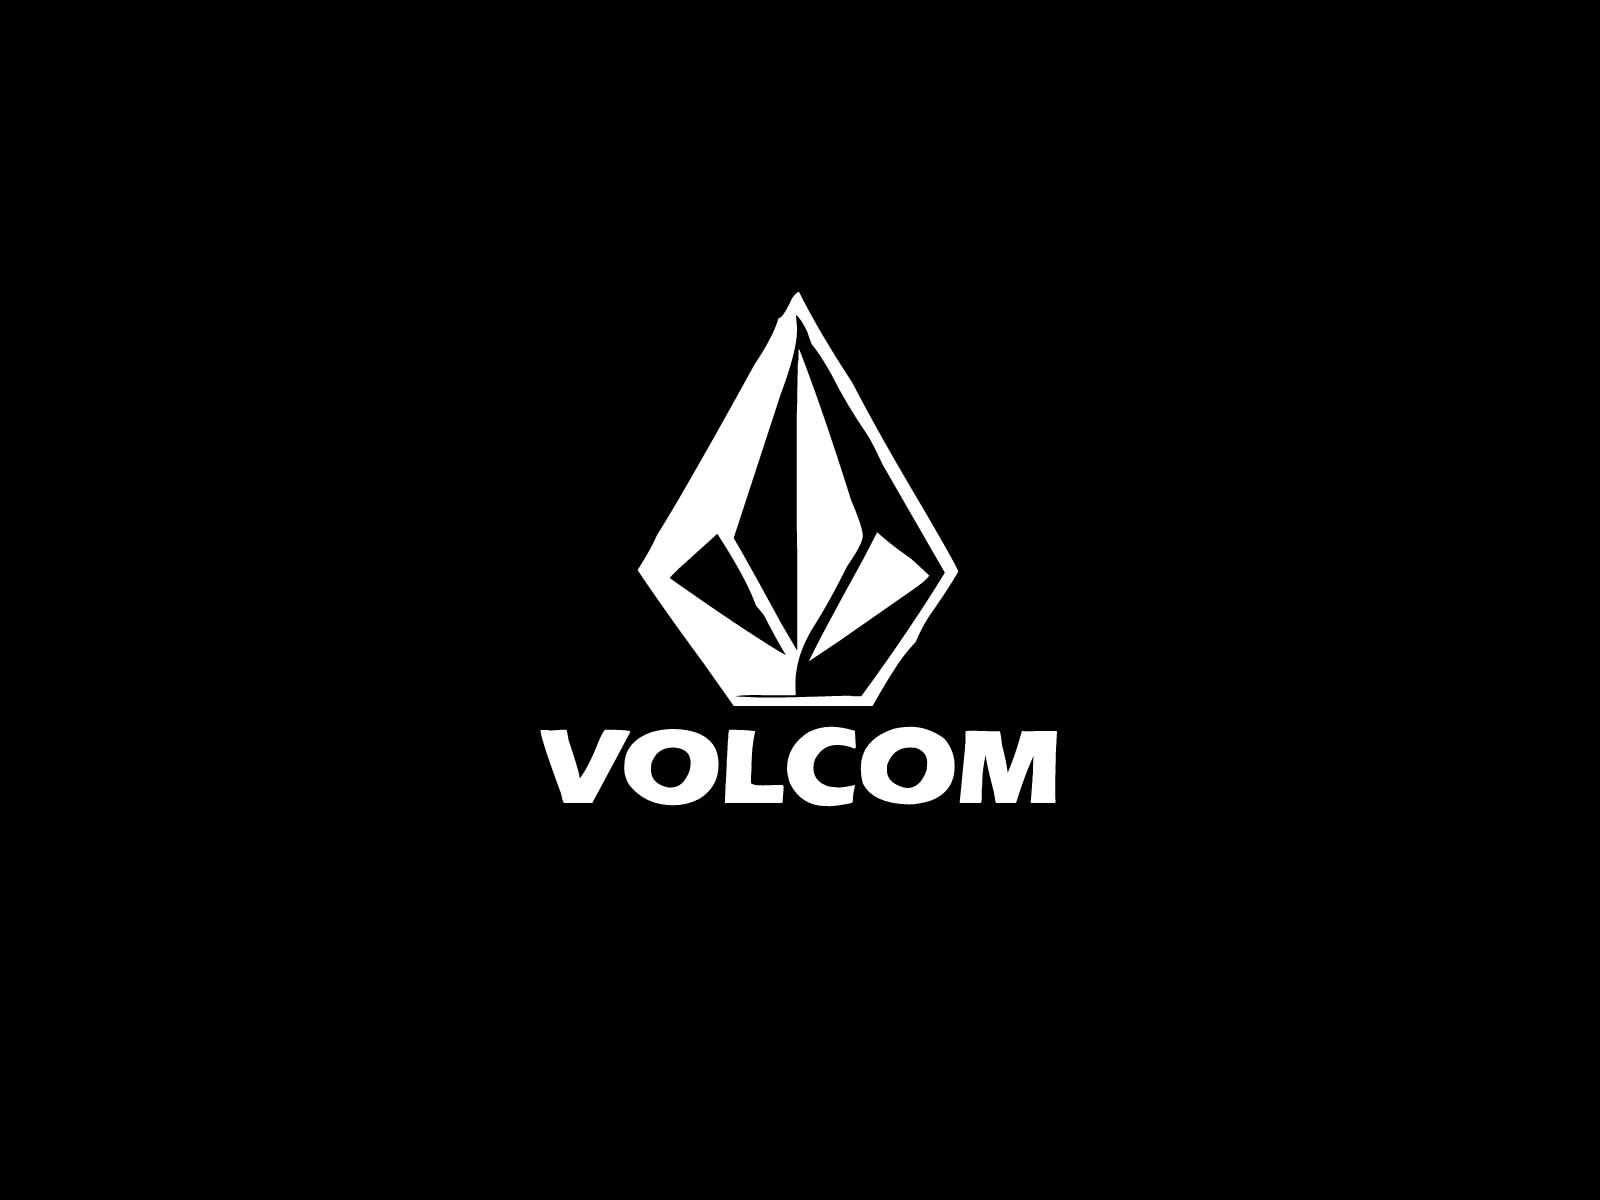 1600x1200 - Volcom Backgrounds 28